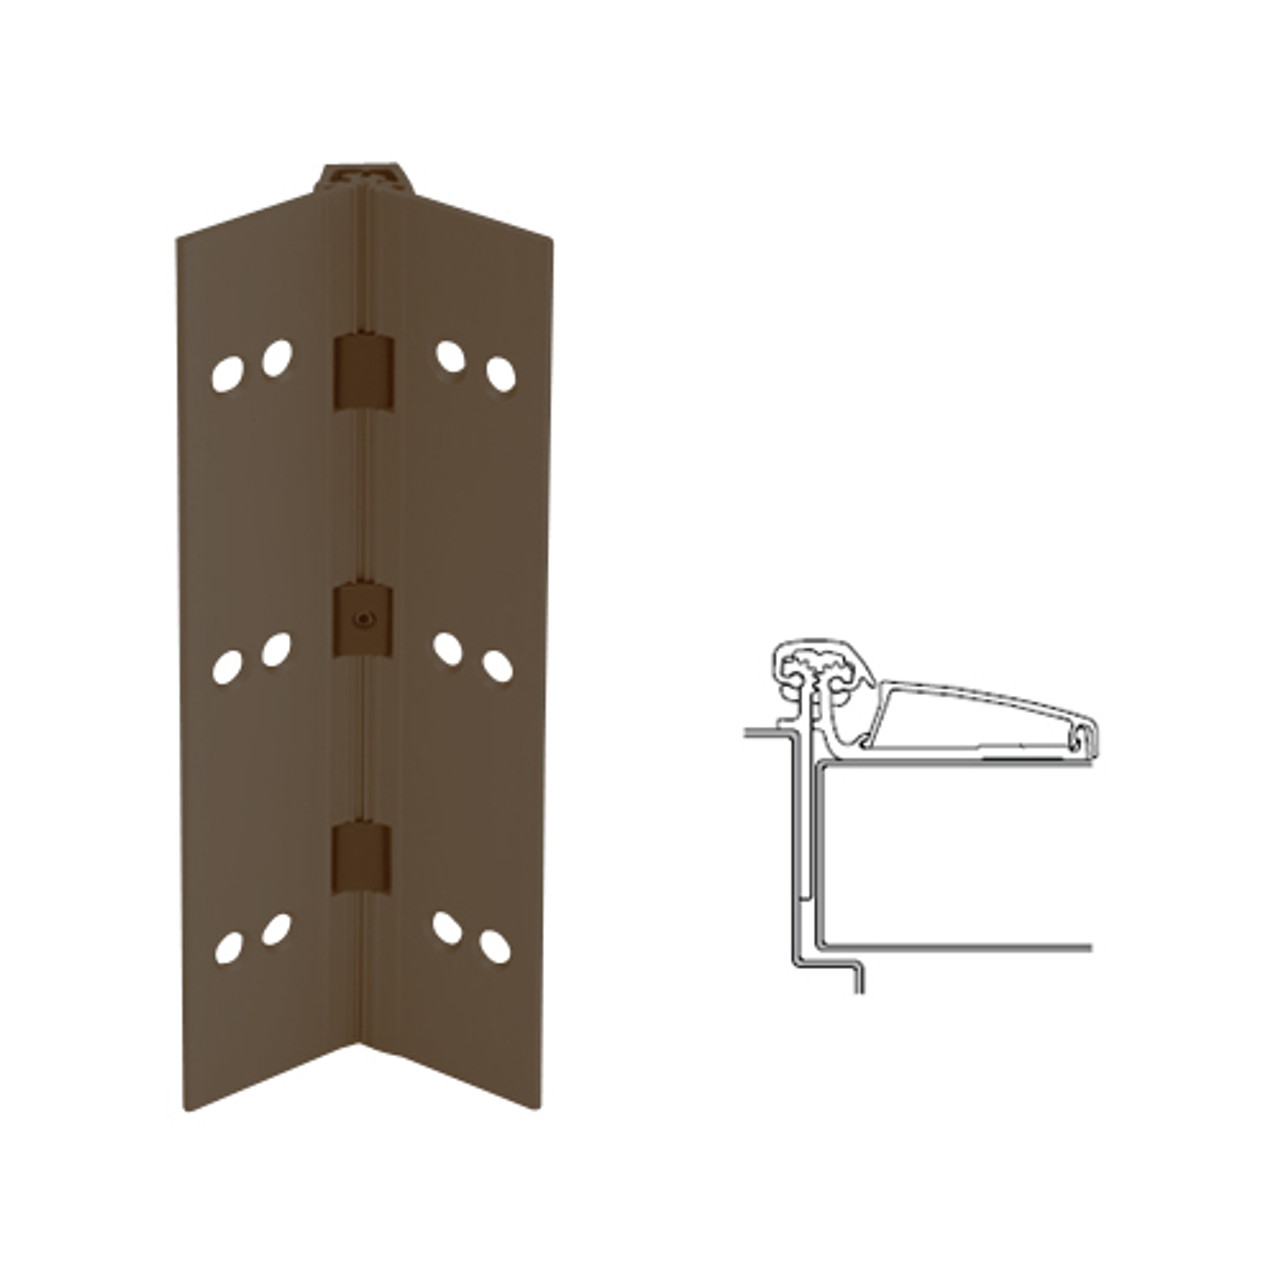 045XY-313AN-83-TFWD IVES Adjustable Half Surface Continuous Geared Hinges with Thread Forming Screws in Dark Bronze Anodized